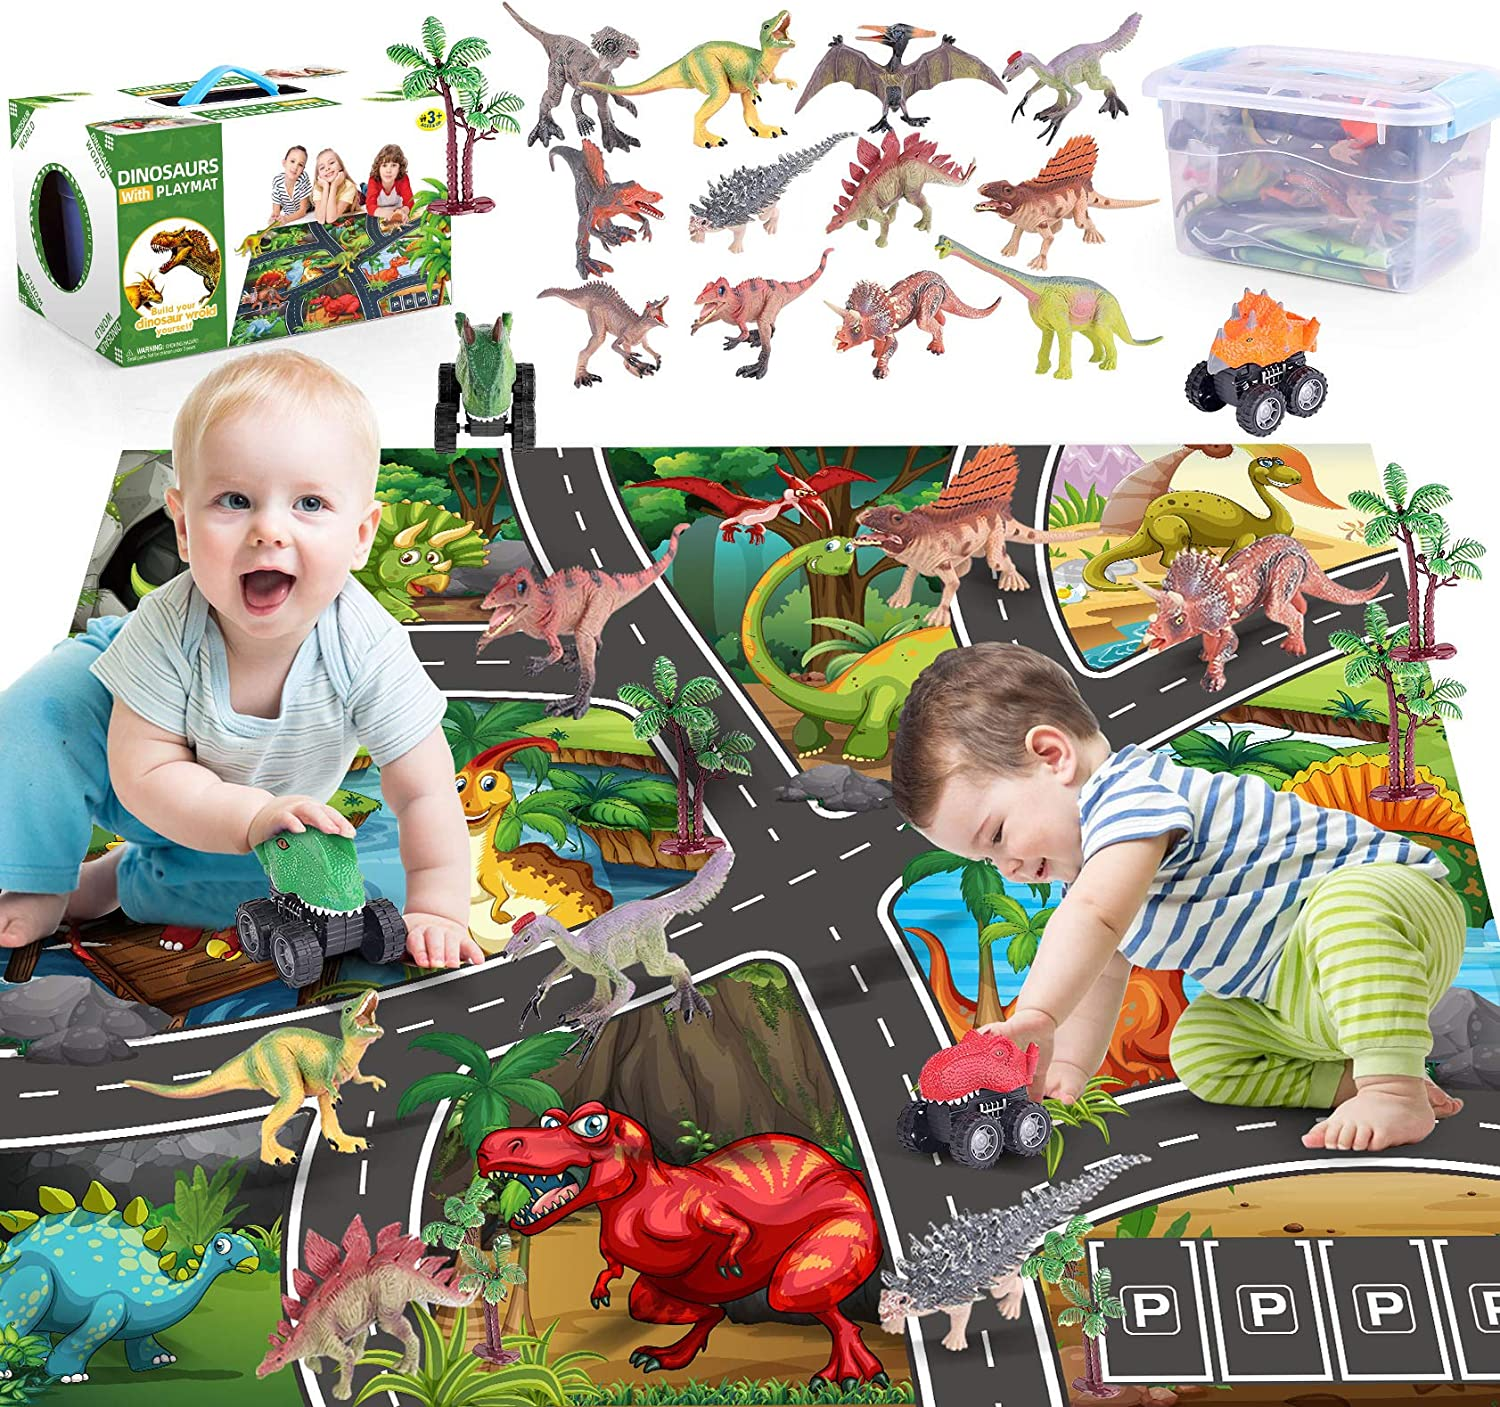 Dinosaur Toys, FANURY 12 Dinosaur Figures w/ Activity Play Mat, Trees & Pull Back Dino Cars, Including T-Rex, Triceratops Dinosaur Playset, Gifts for 3 4 5 6 7 Years Old Kids Boys Girls